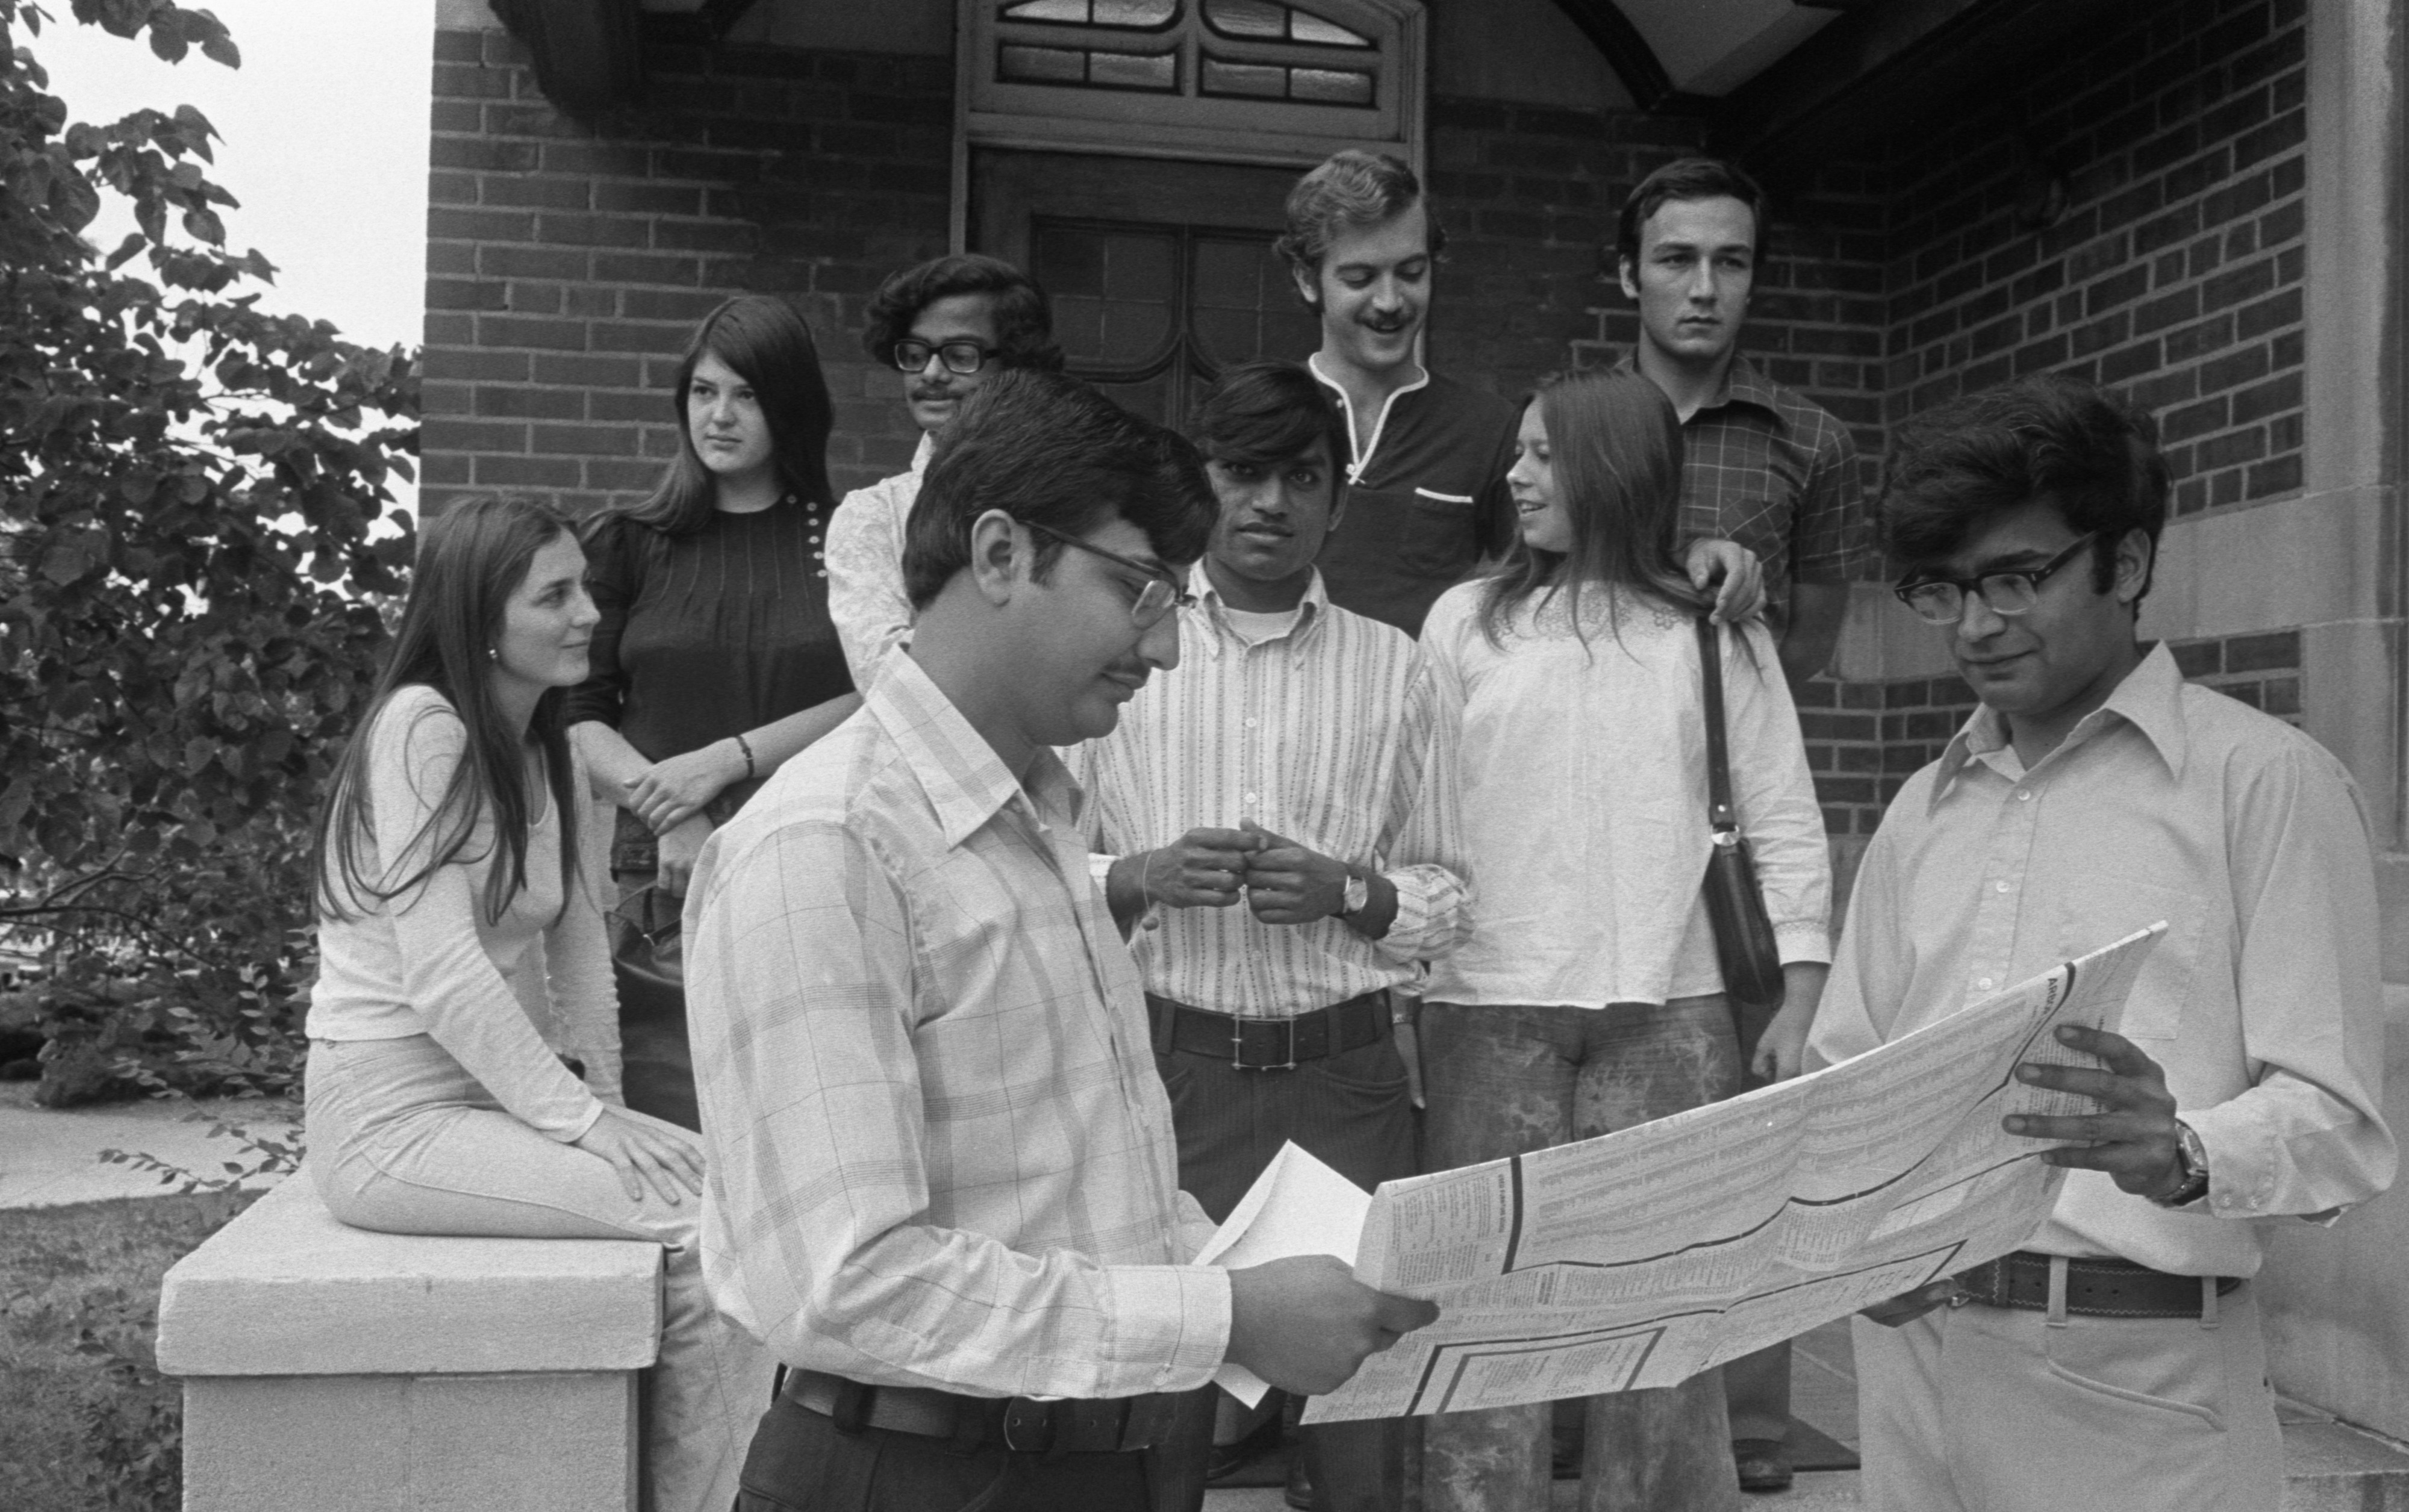 UM International Students Prepare For A Shopping Trip, September 1, 1974 image